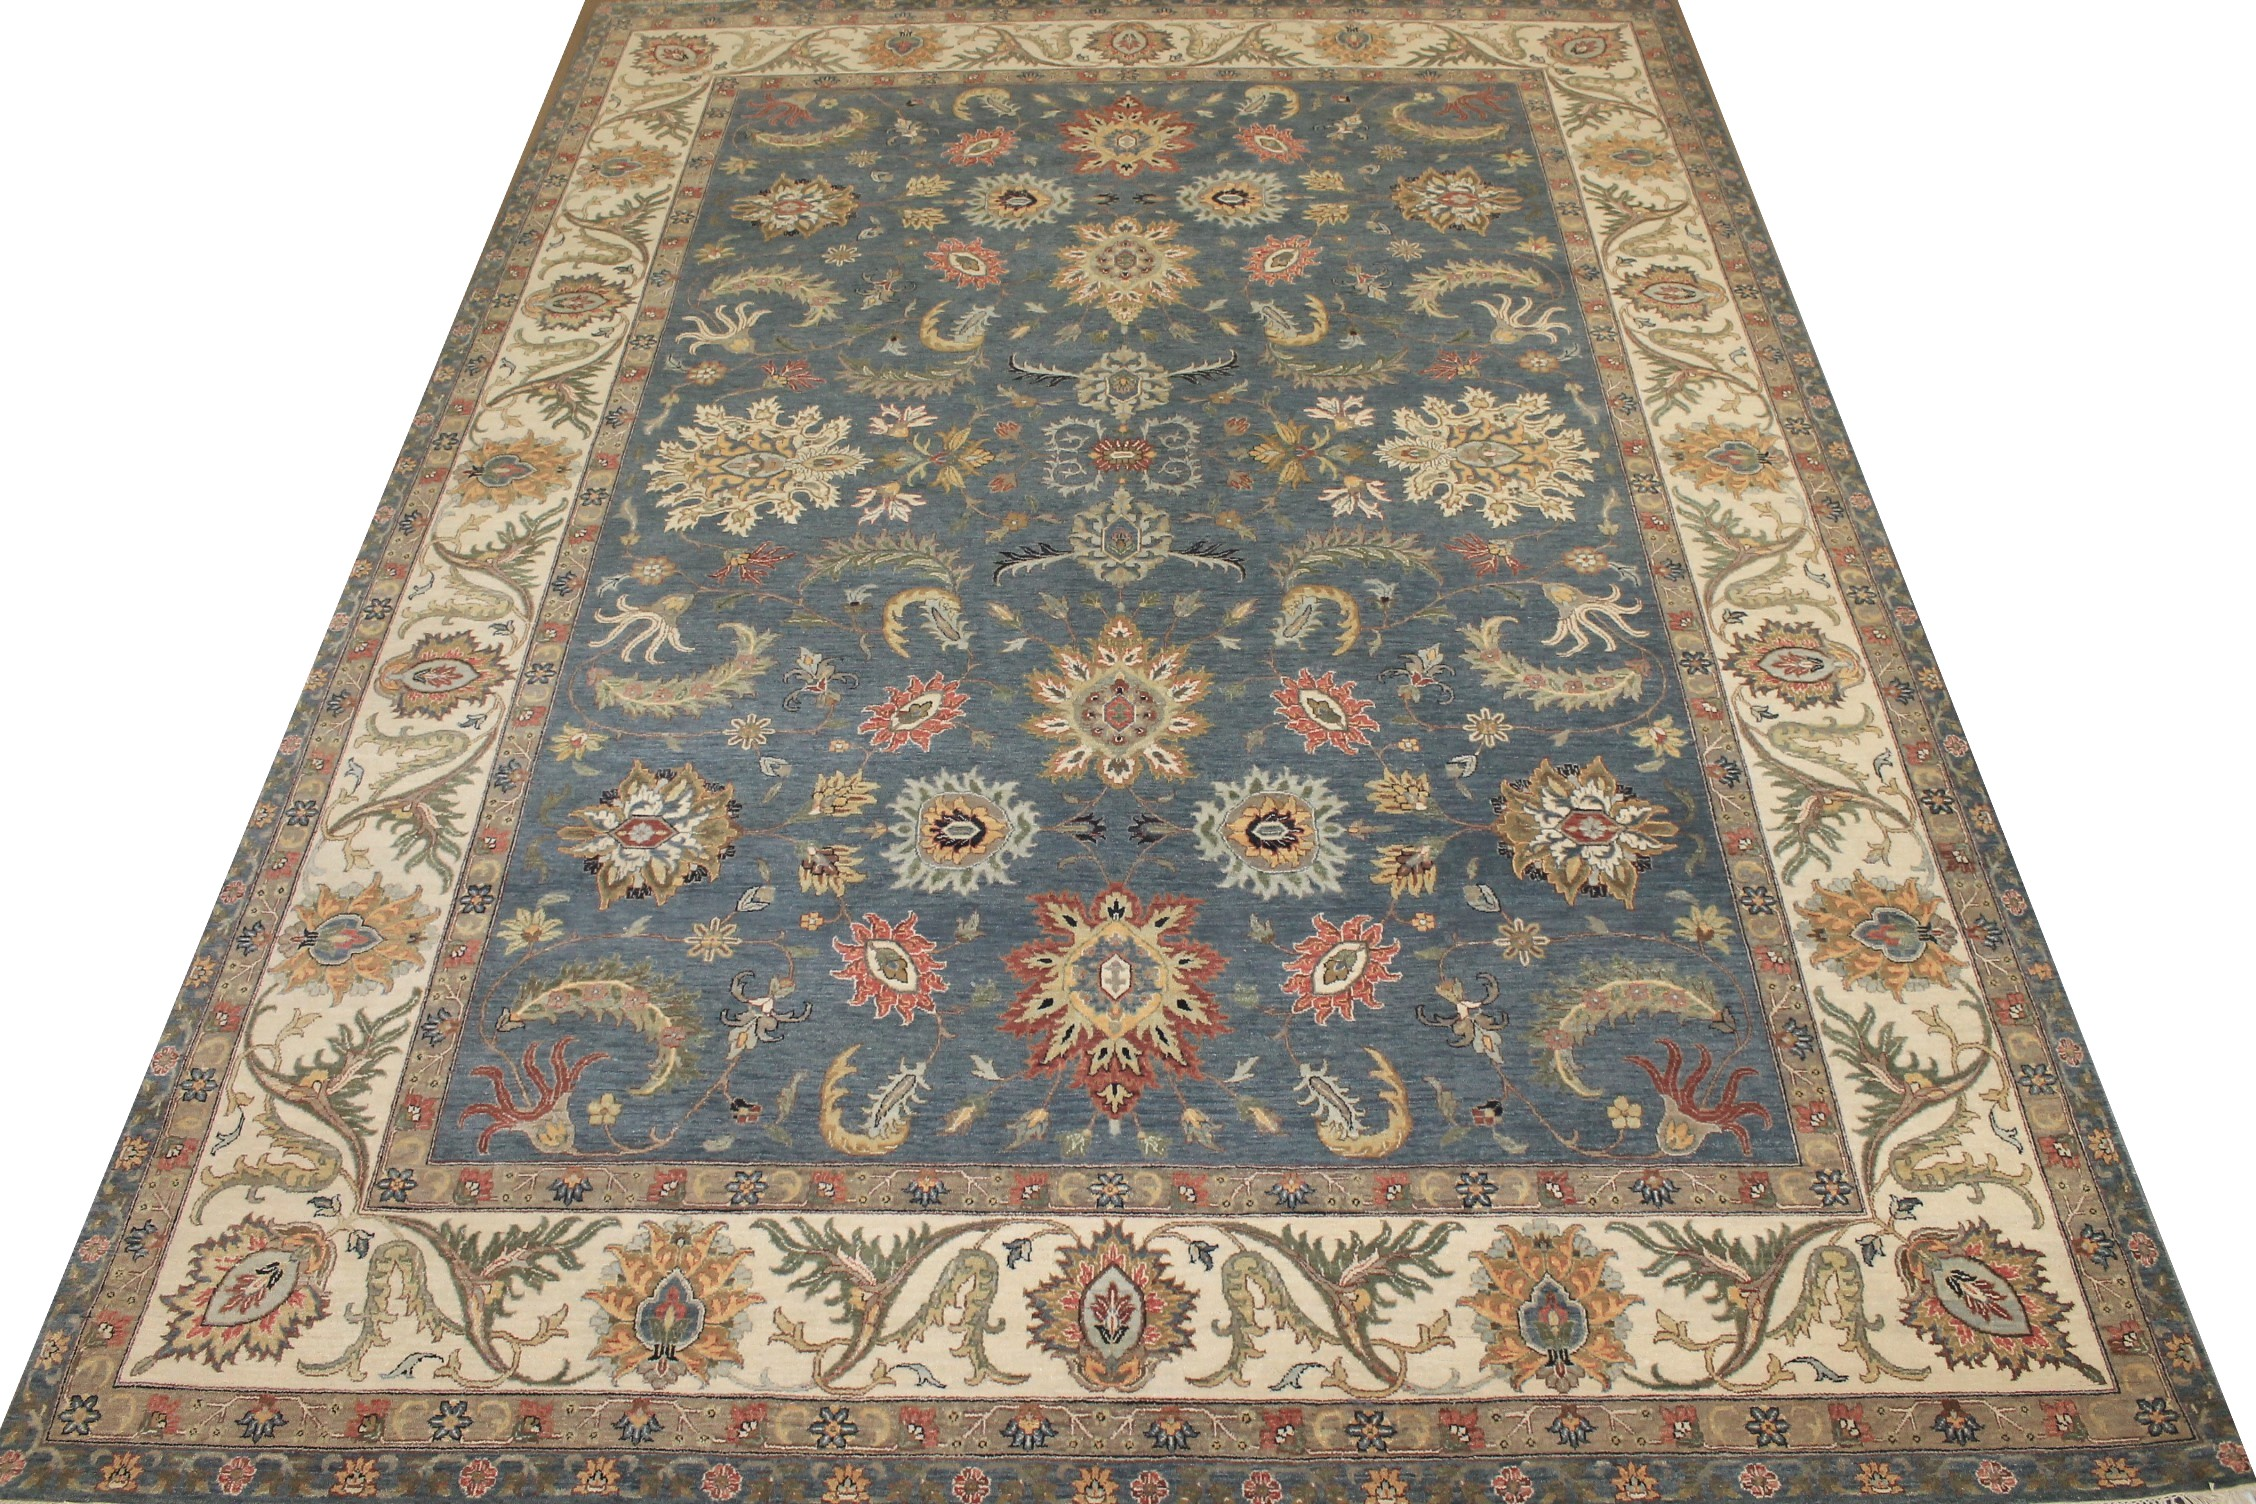 10x14 Oriental Hand Knotted Wool Area Rug - MR025525